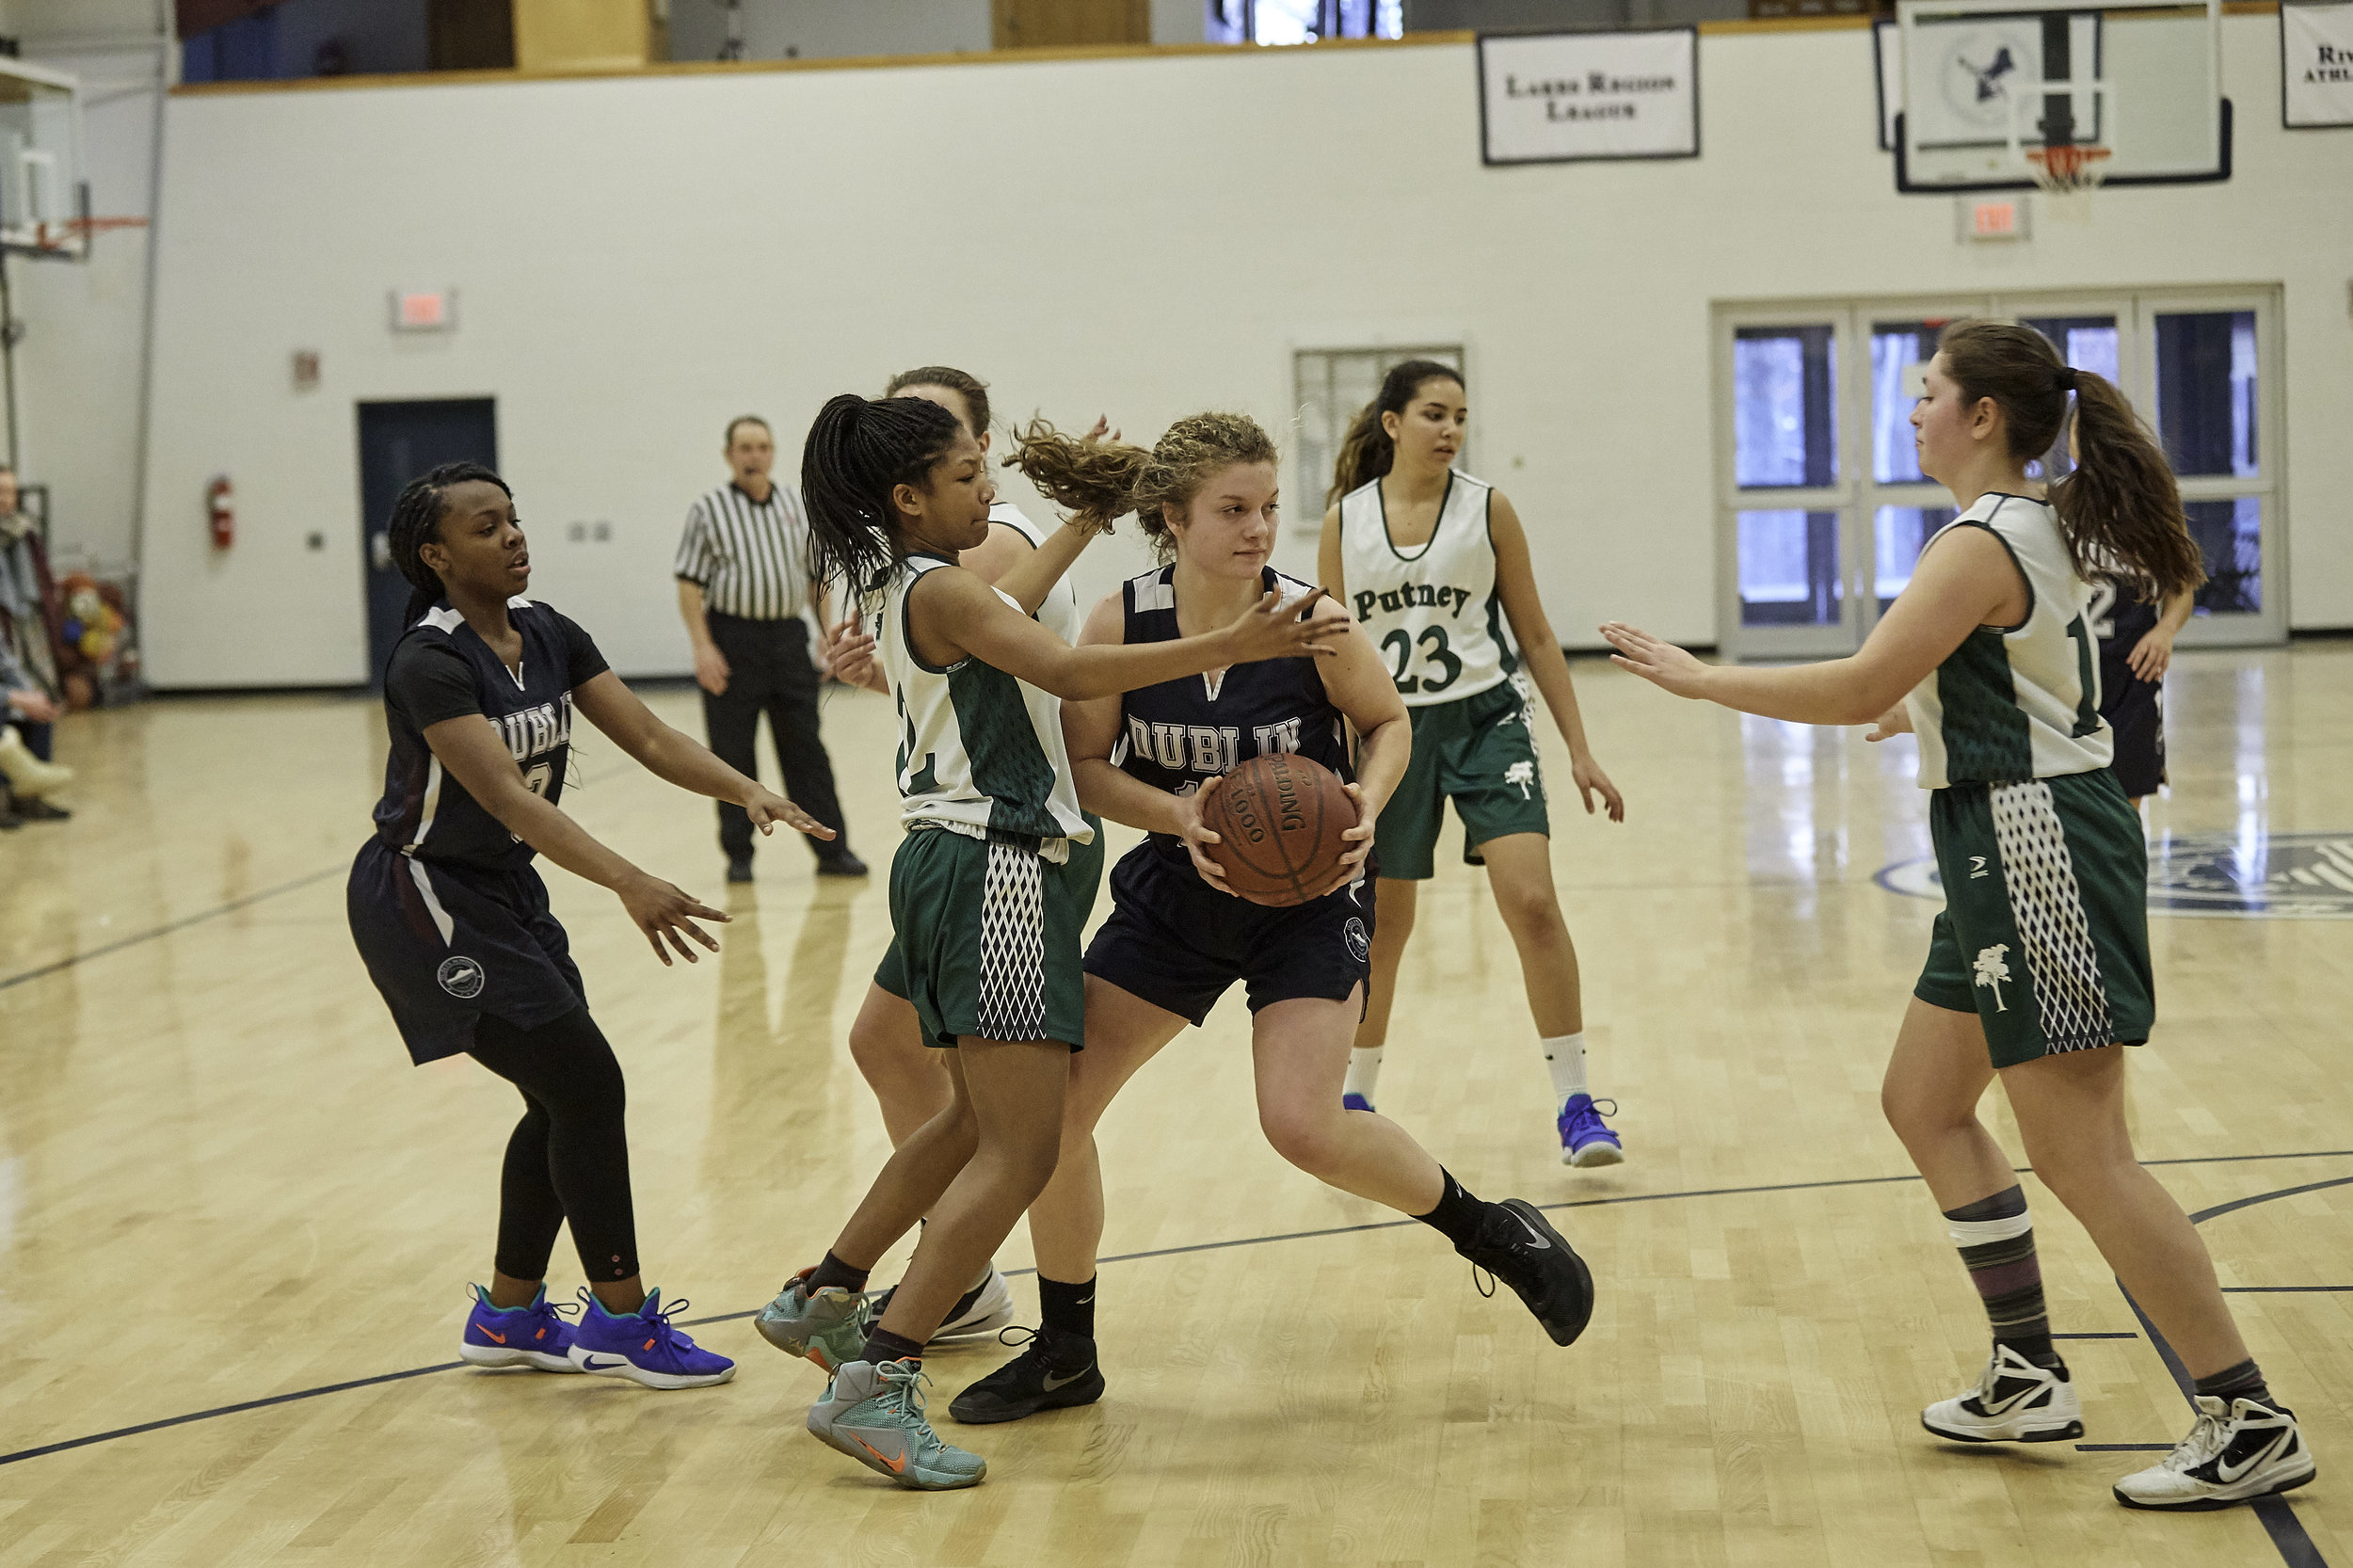 Basketball vs Putney School, February 9, 2019 - 167435.jpg